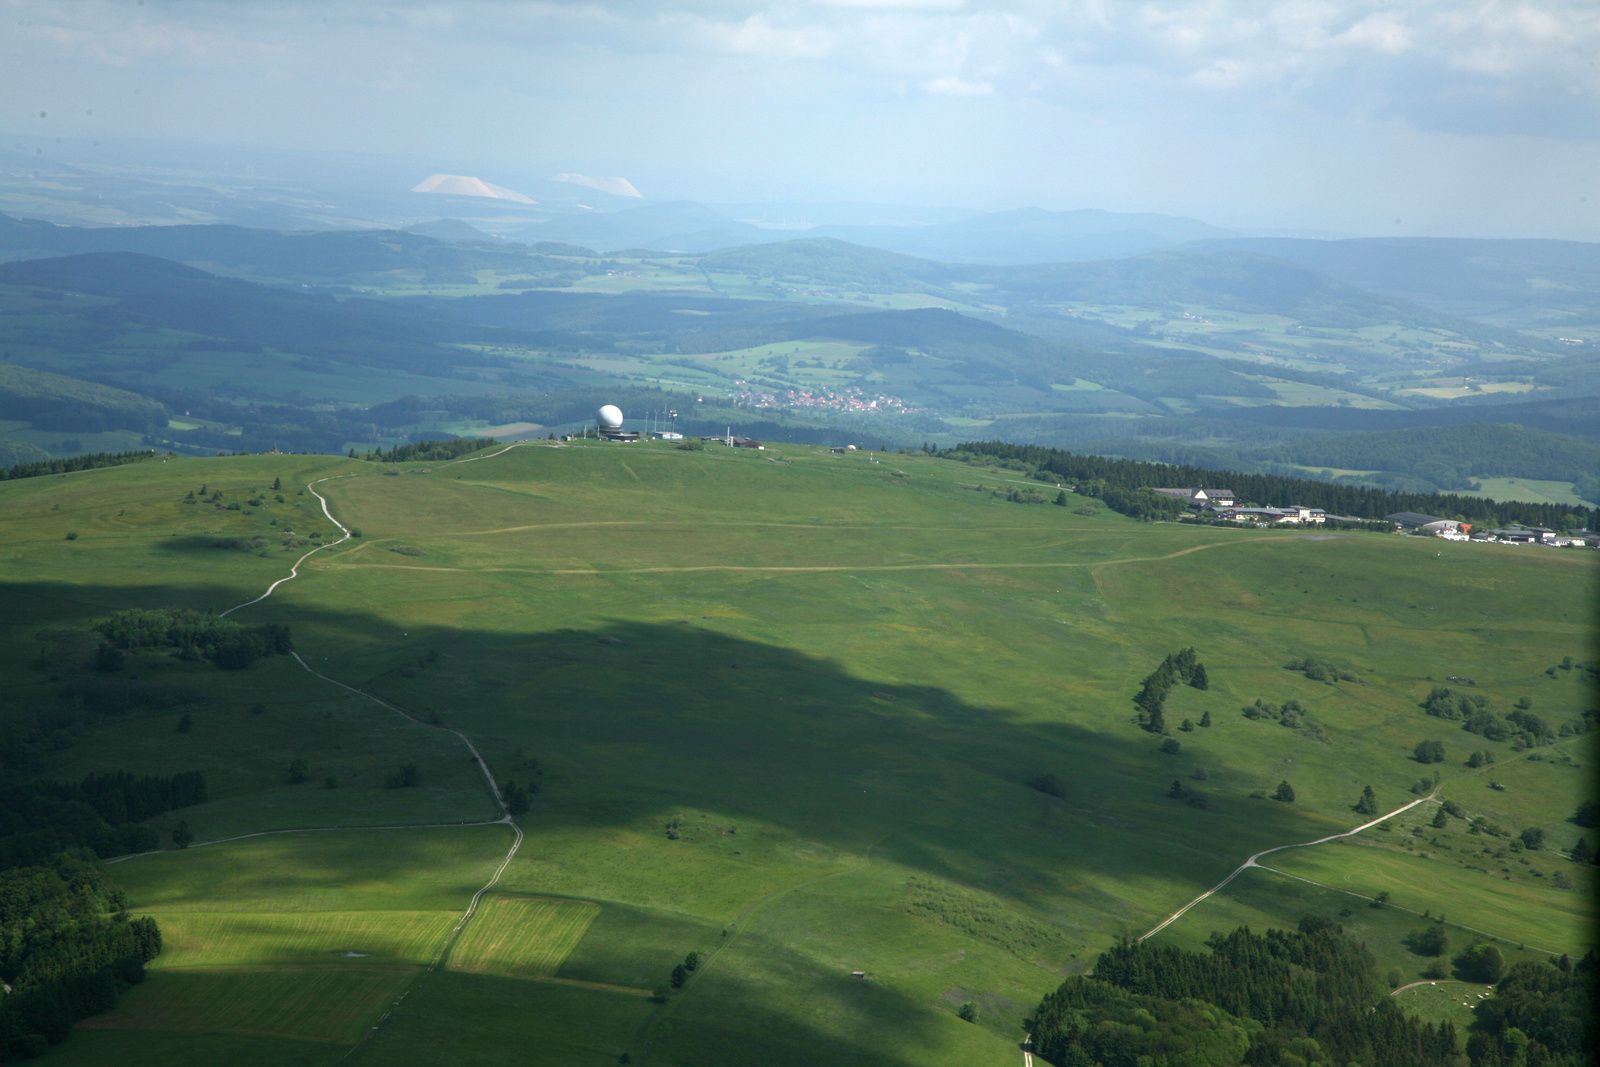 Rhön - the top of Wasserkuppe with the radar dome - Photo © Bernard Duyck 05.2014